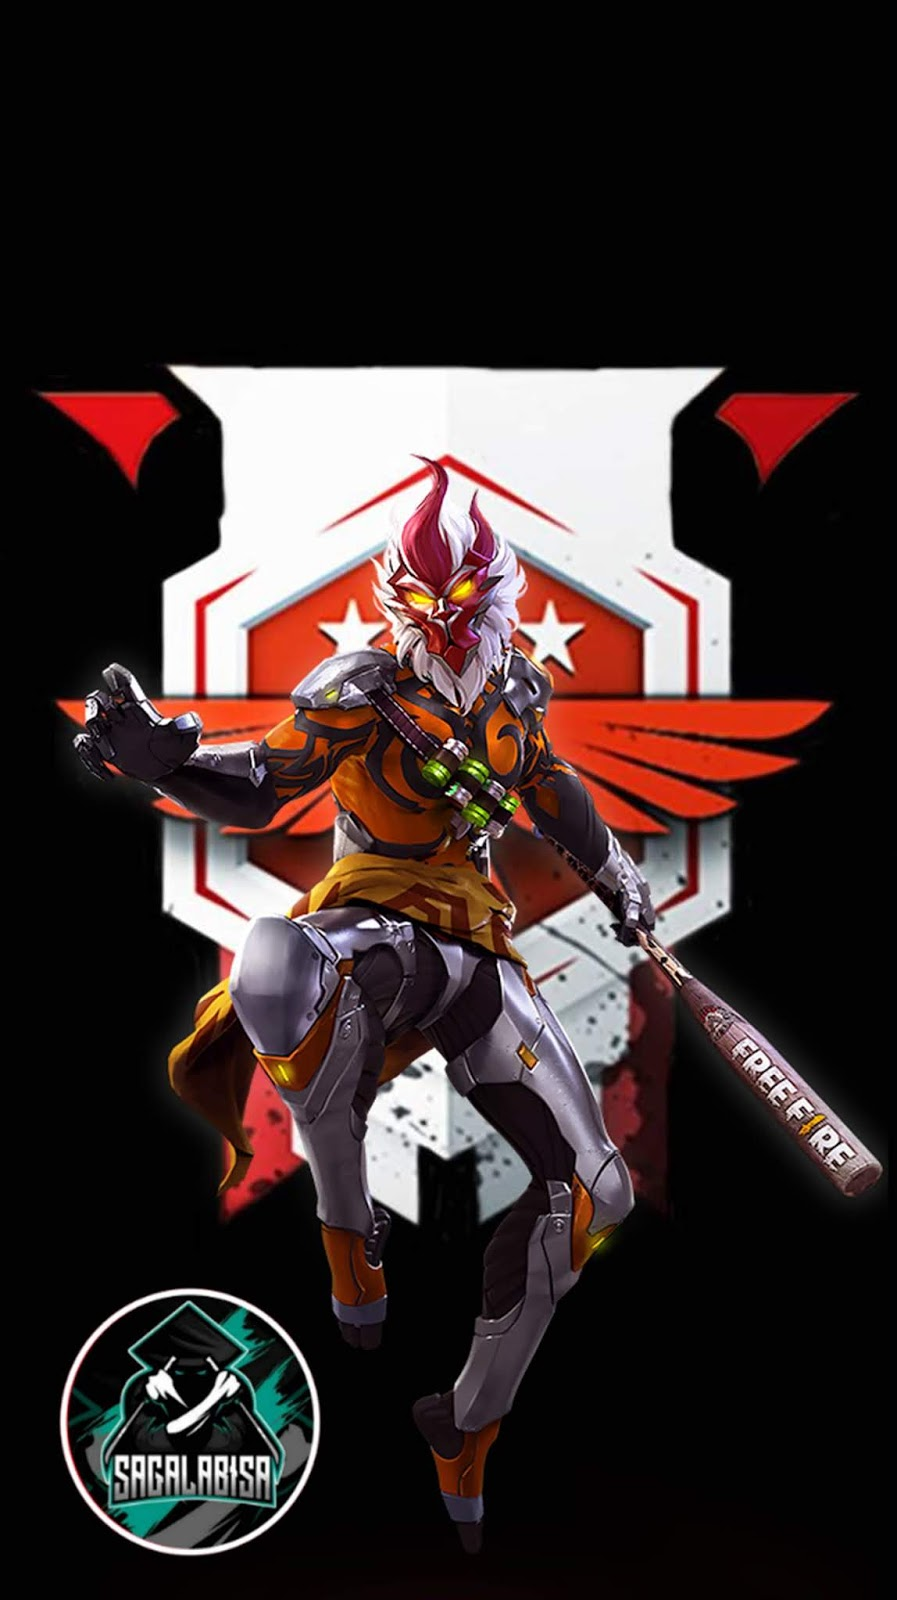 wallpaper%2Bwukong%2Bfree%2Bfire